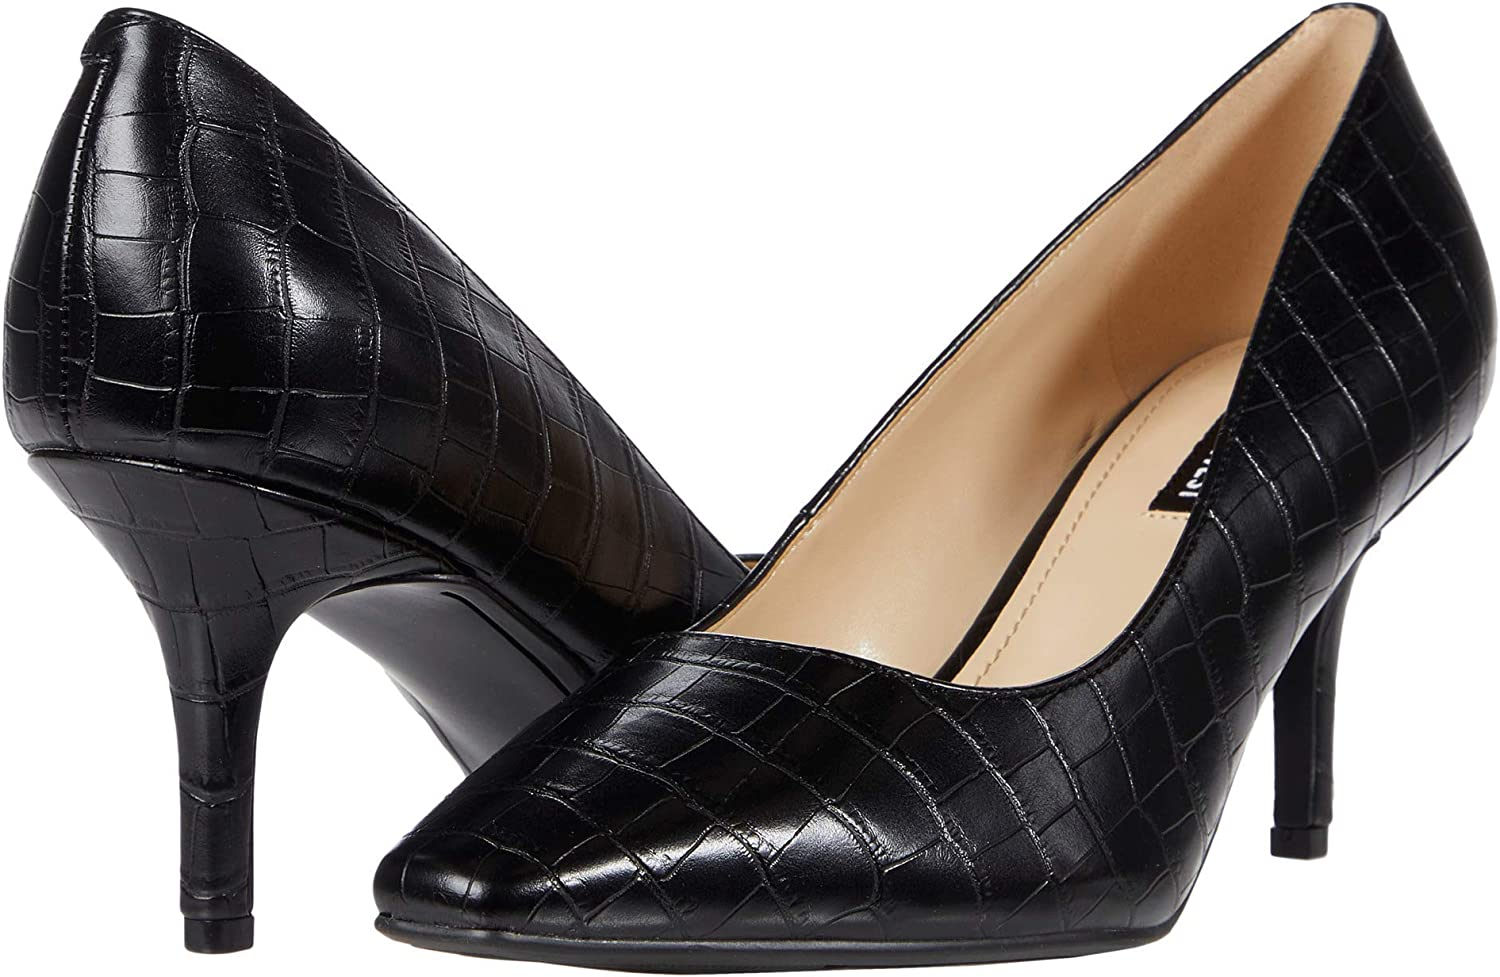 NINE WEST Women's Wnabigal 55% OFF Free shipping on posting reviews Pump